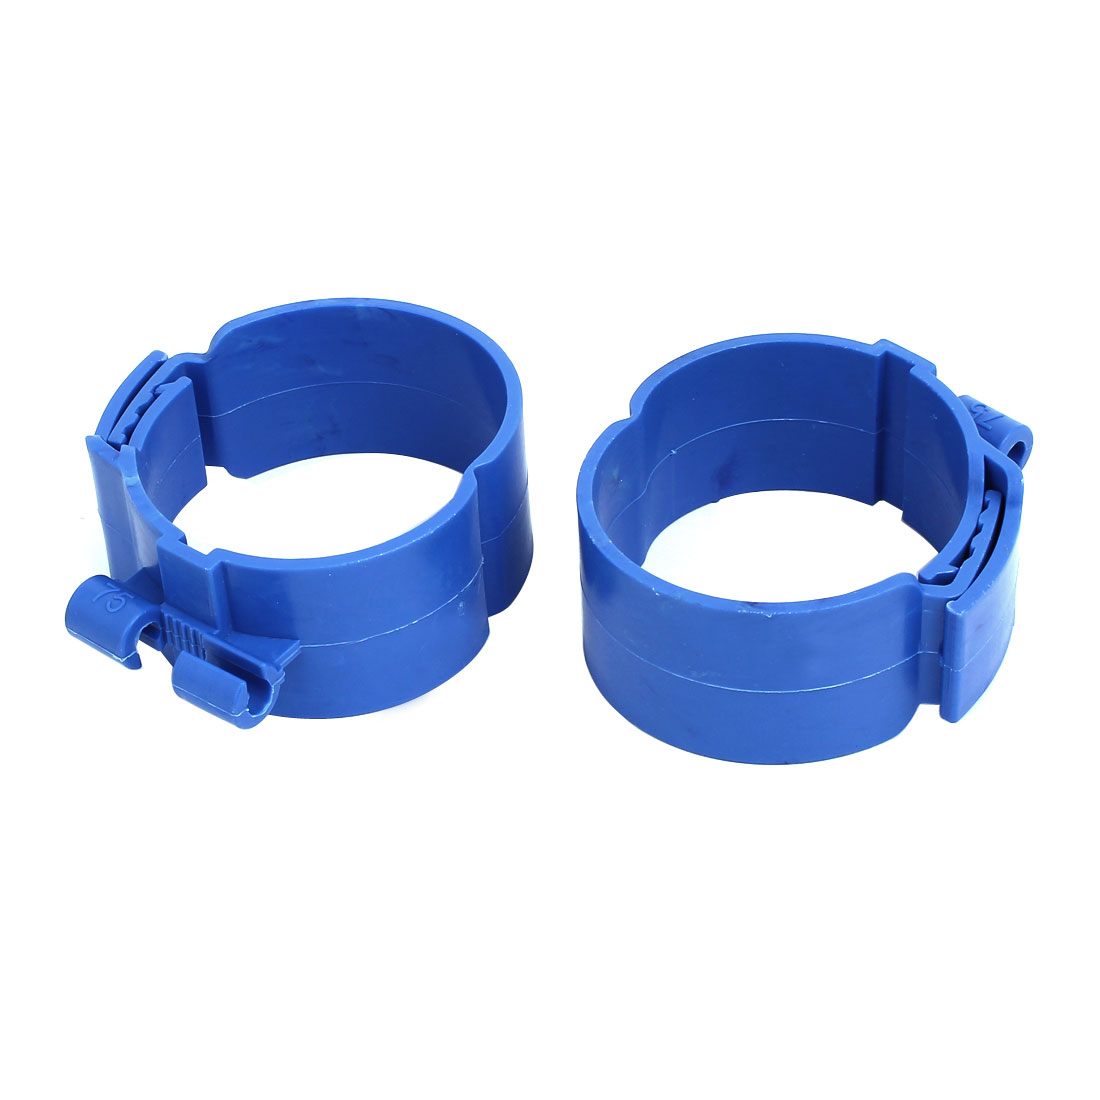 75mm Dia 38mm Width Central Air Conditioner Pipe Clip Clamp Blue 2pcs